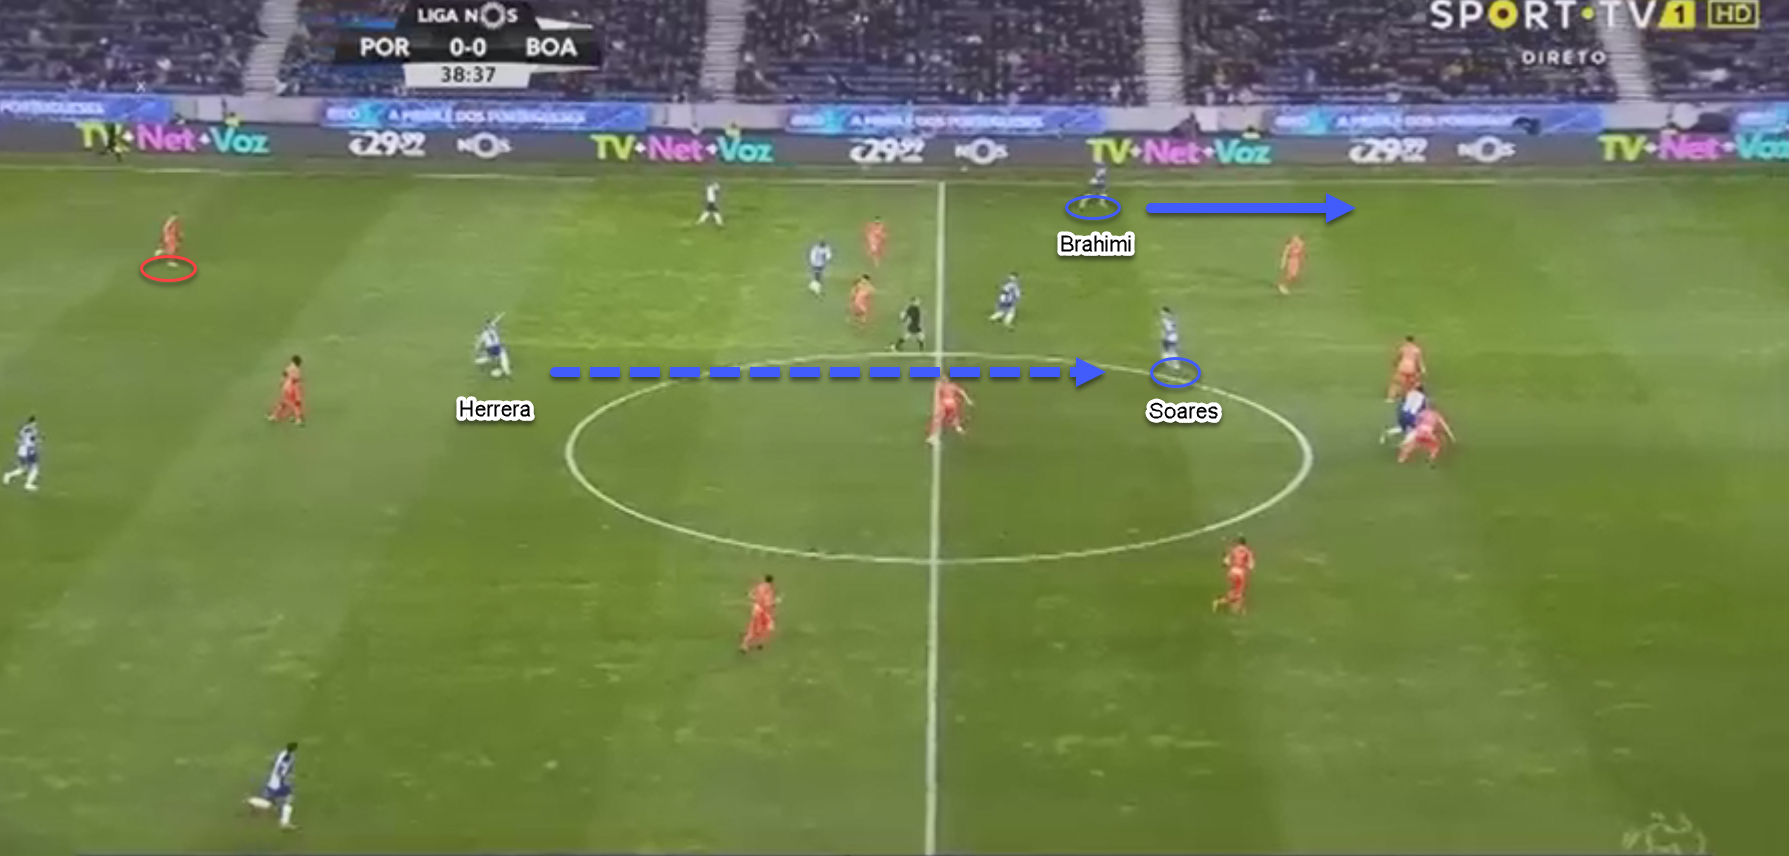 Porto Boavista Primeira Liga Tactical Analysis